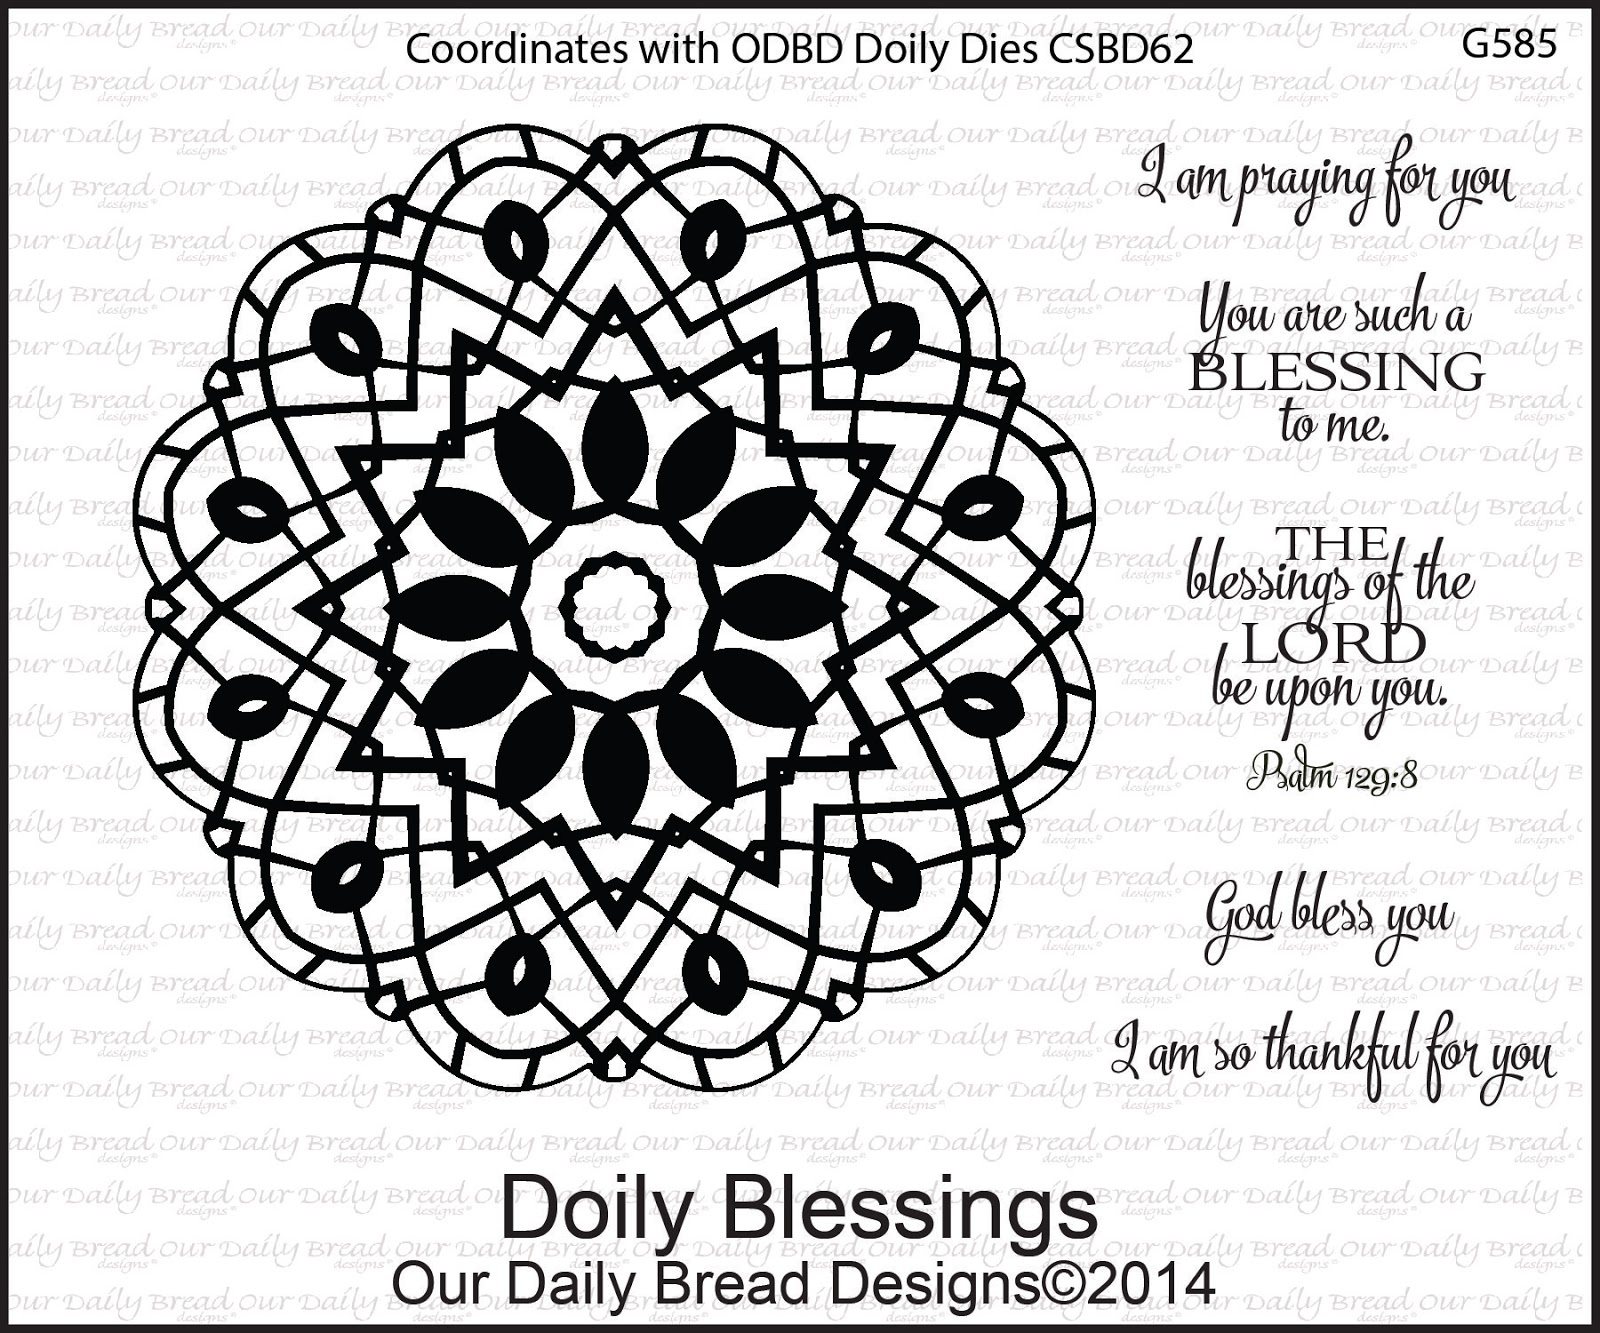 Stamps - Our Daily Bread Designs Doily Blessings